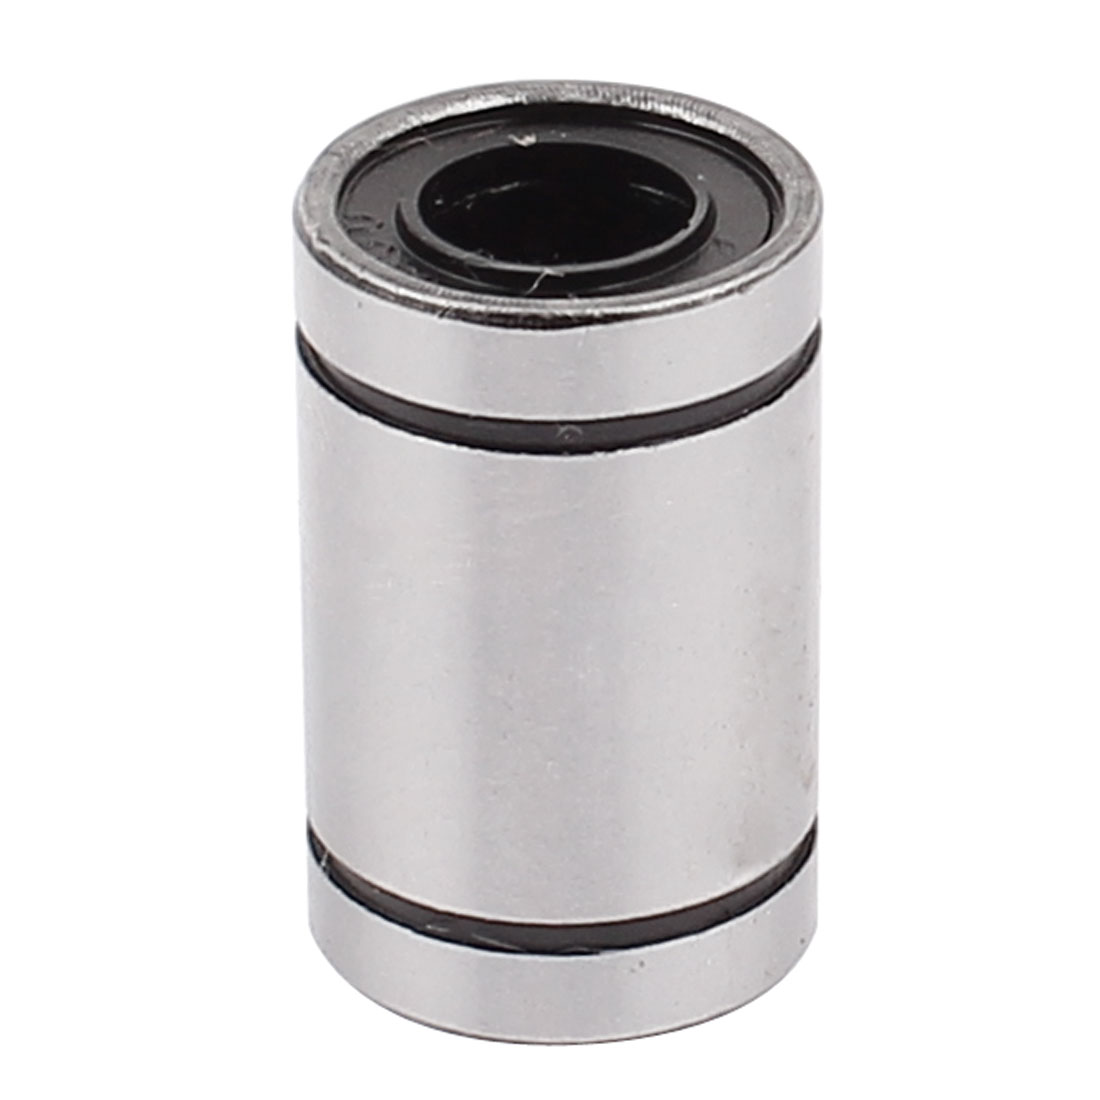 8mmx15mmx24mm Silver Tone LM8UU Linear Motion Ball Bushing Bearings